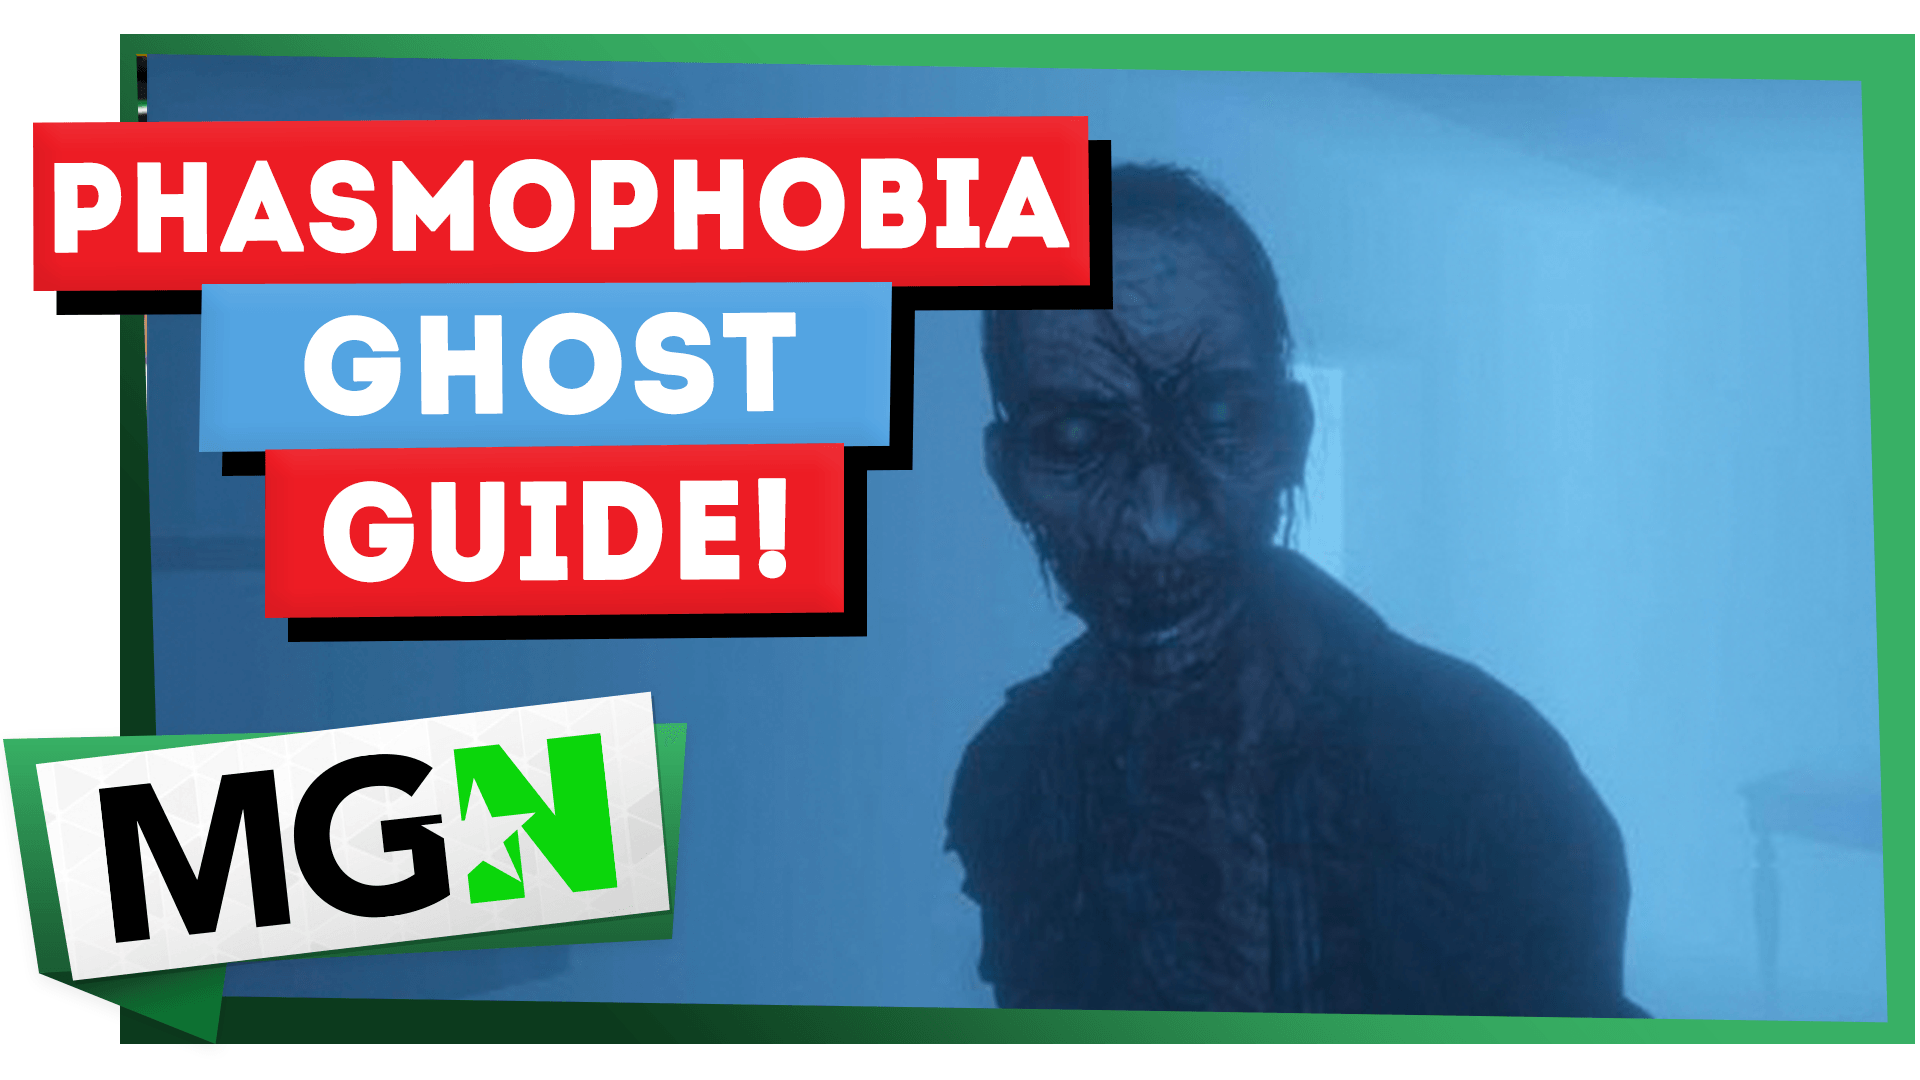 phasmophobia ghost guide